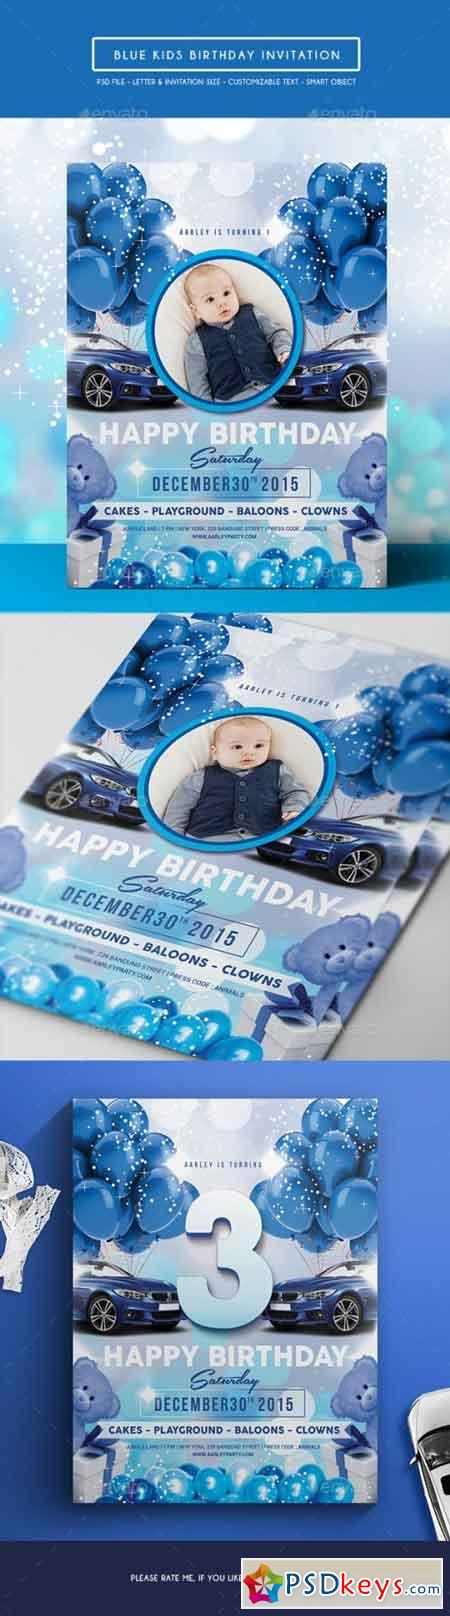 Blue Kids Birthday Invitation 14165162